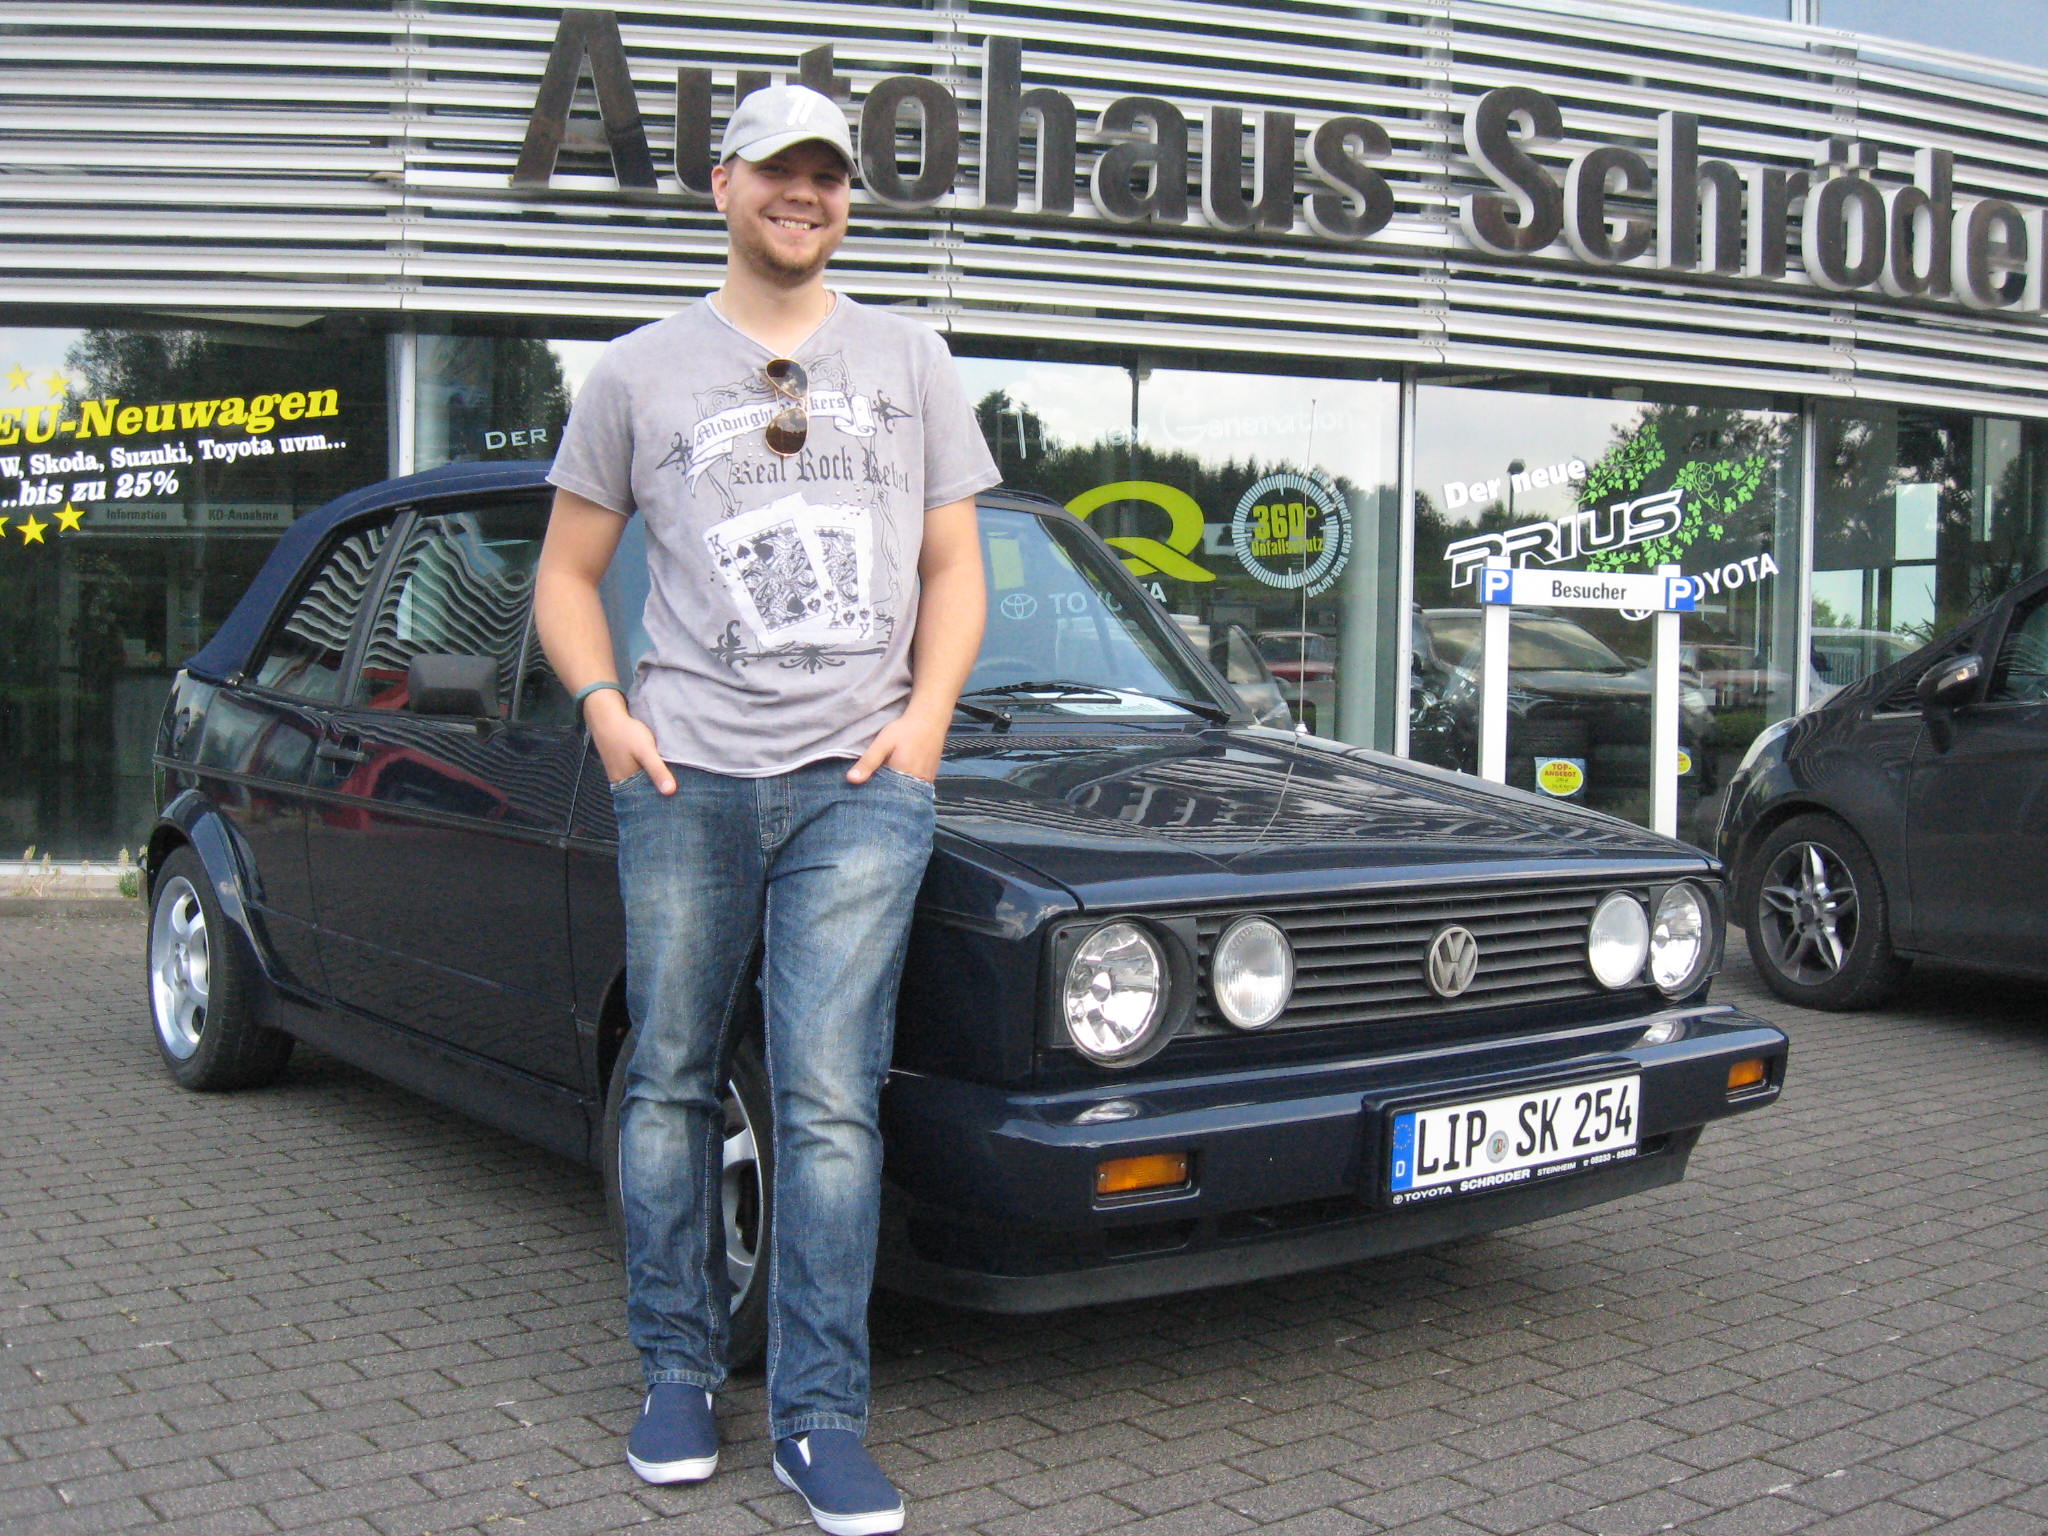 tl_files/toyota/img/Kohl Golf Cabrio.JPG